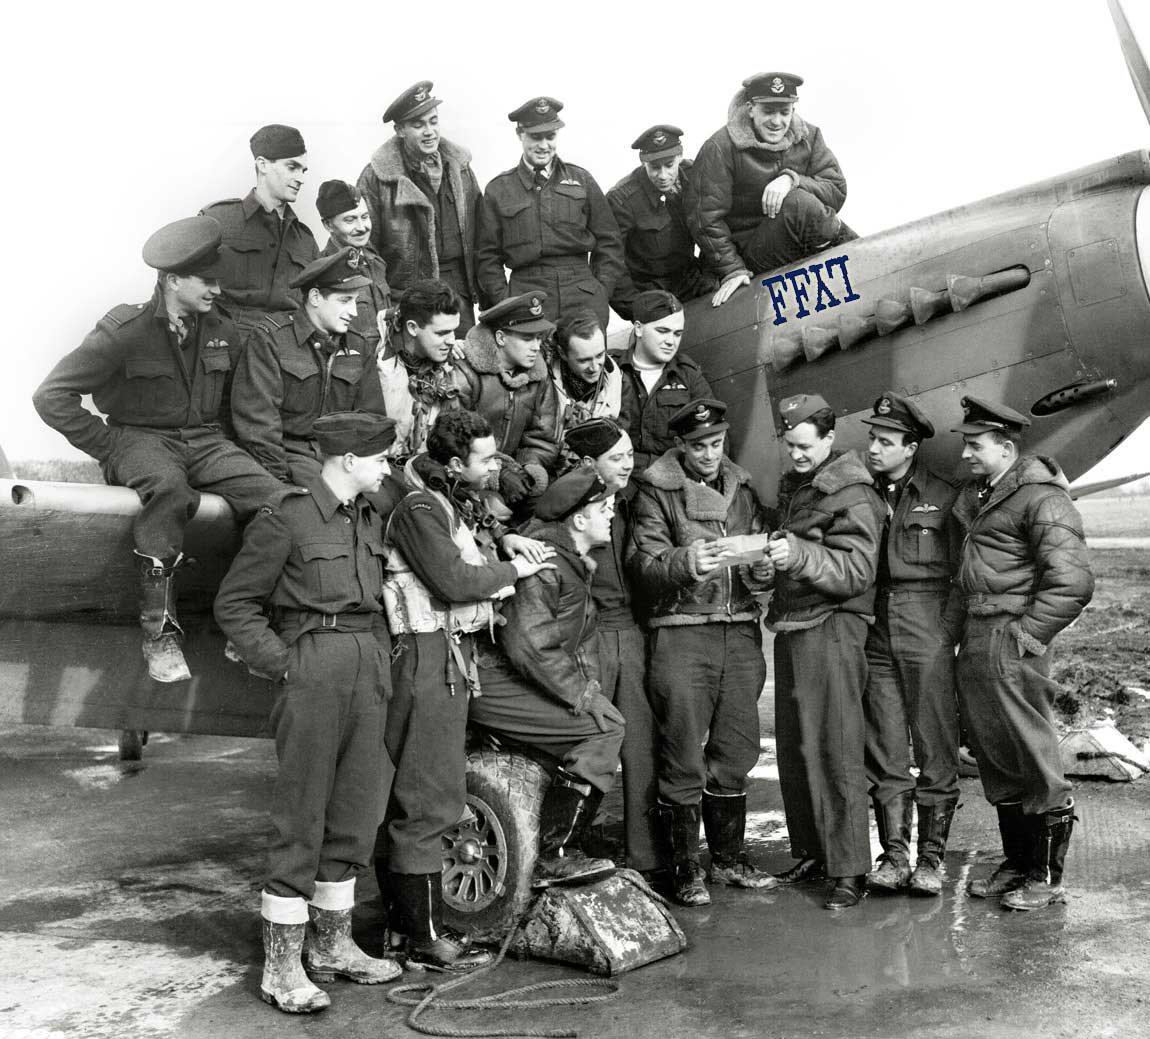 A group of men wearing military uniforms crouch on top of or stand in front of a single-propeller fighter aircraft, looking at a letter that two of the men are holding between them.